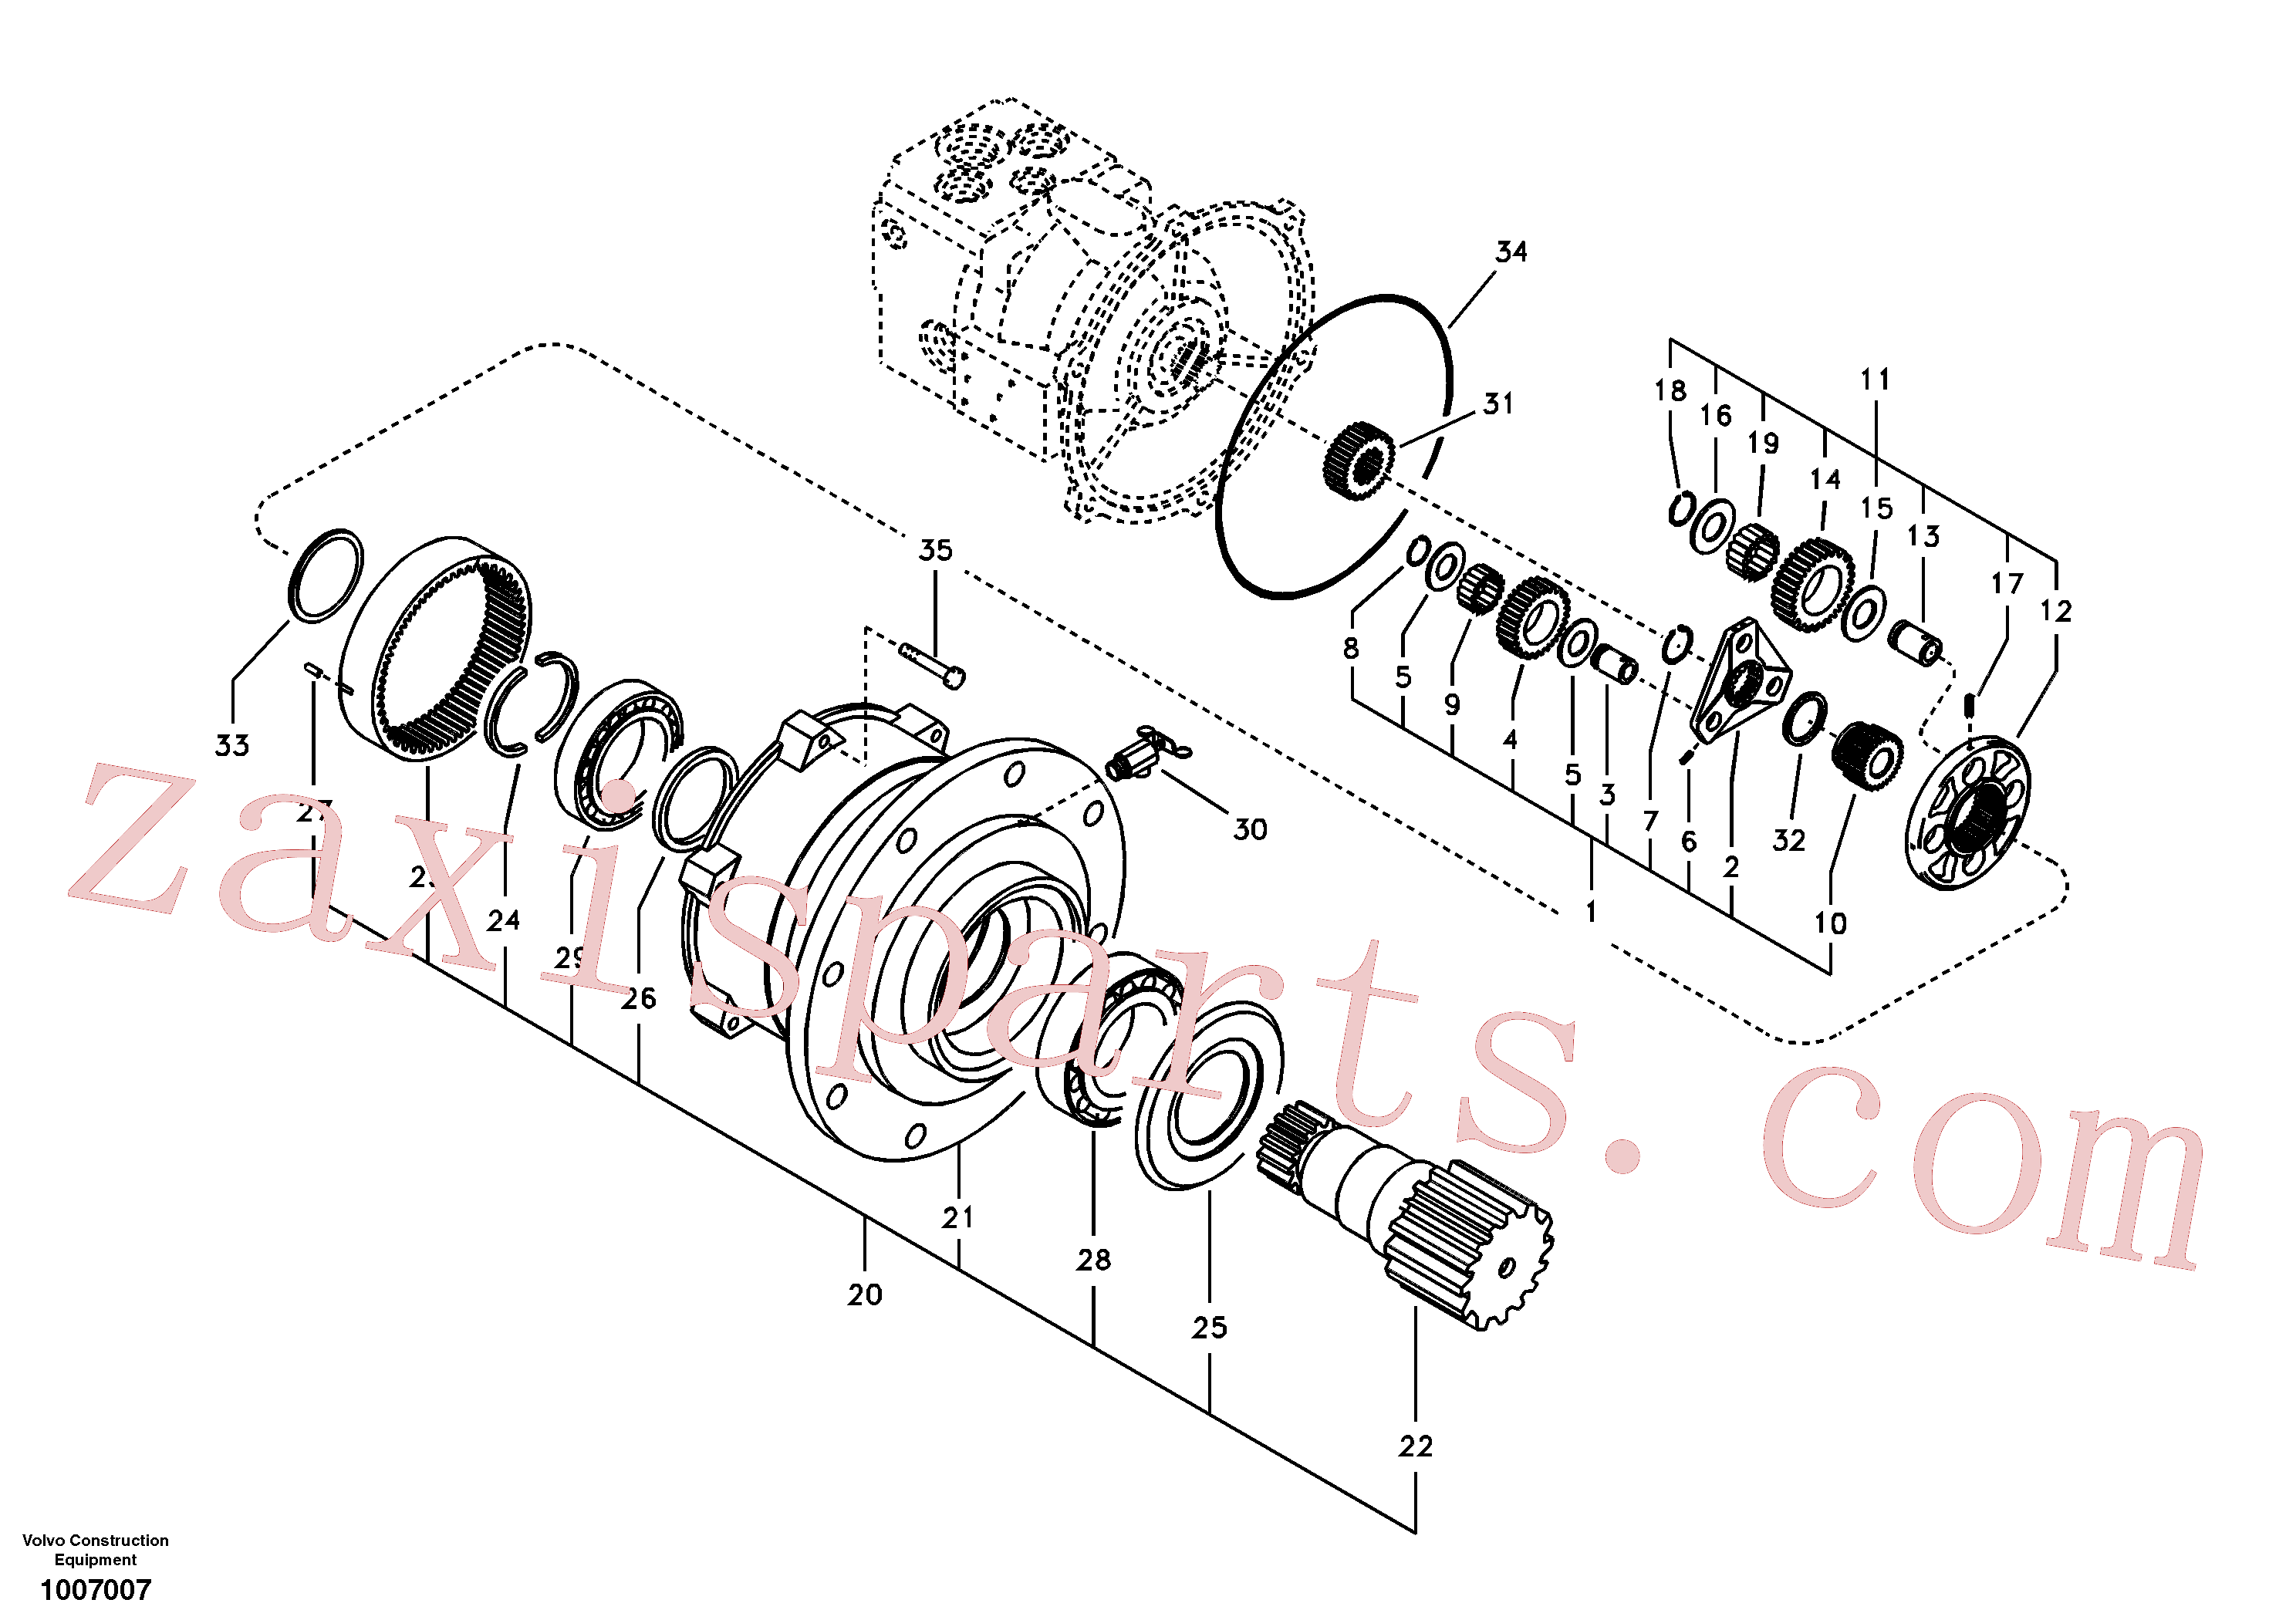 SA1020-02081 for Volvo Swing gearbox(1007007 assembly)